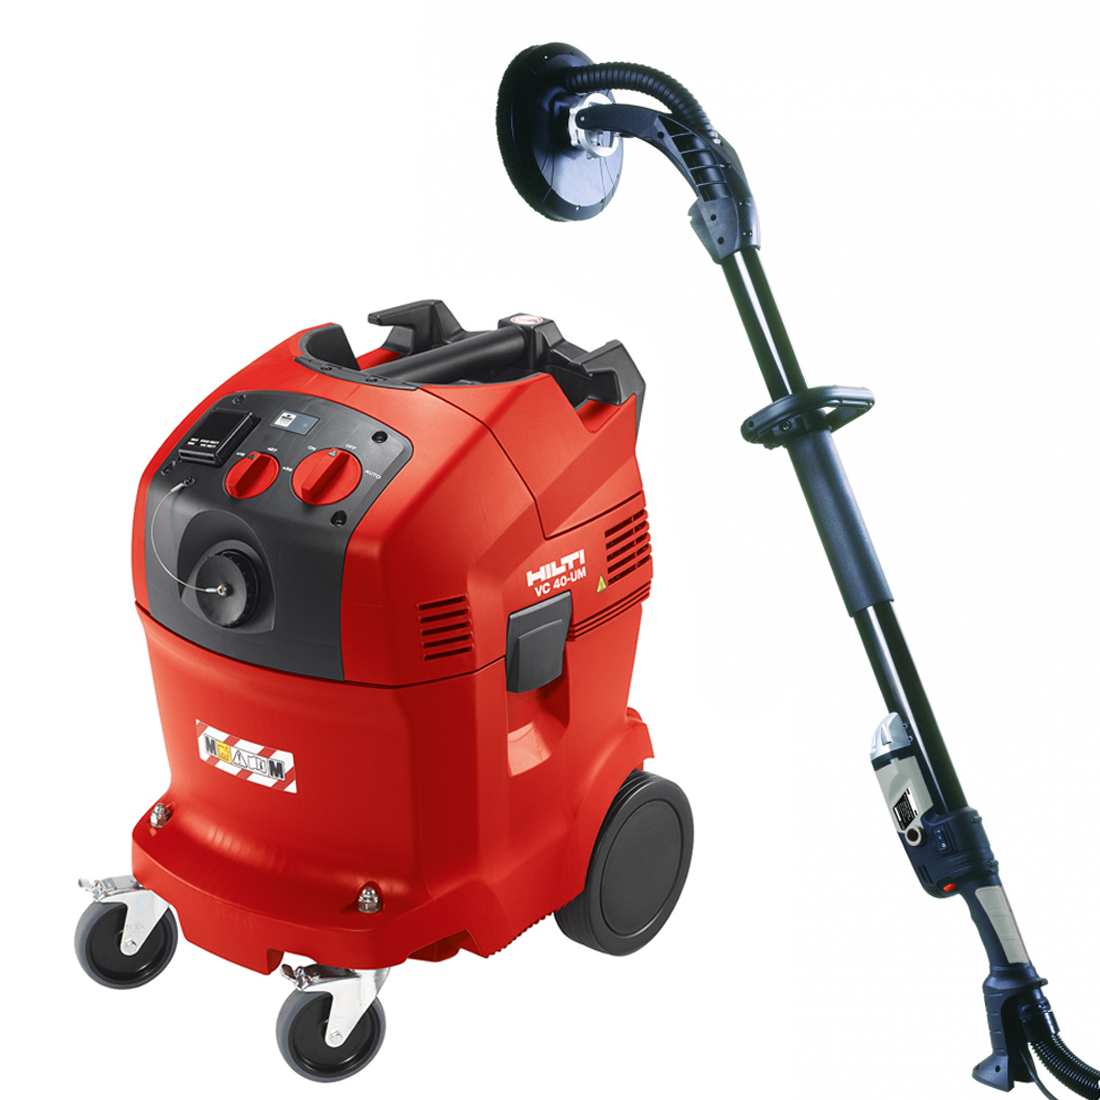 Power Digger Amp Rotavator Hire Lawn Care Amp Landscaping